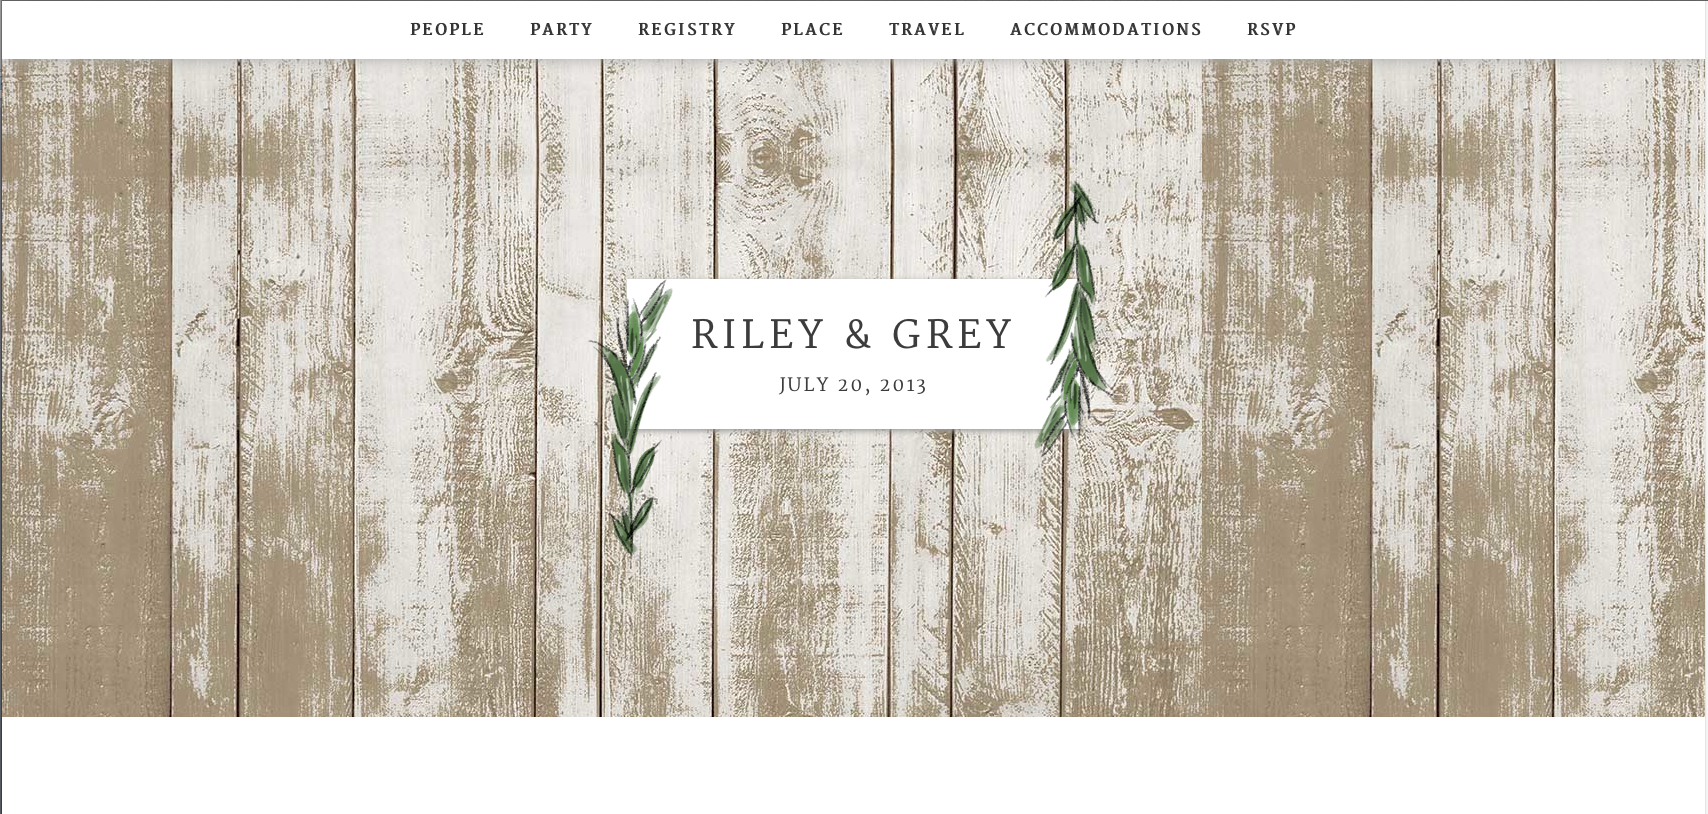 Wedding Planning Websites.Wedding Websites Why All Engaged Couples Need One Amy